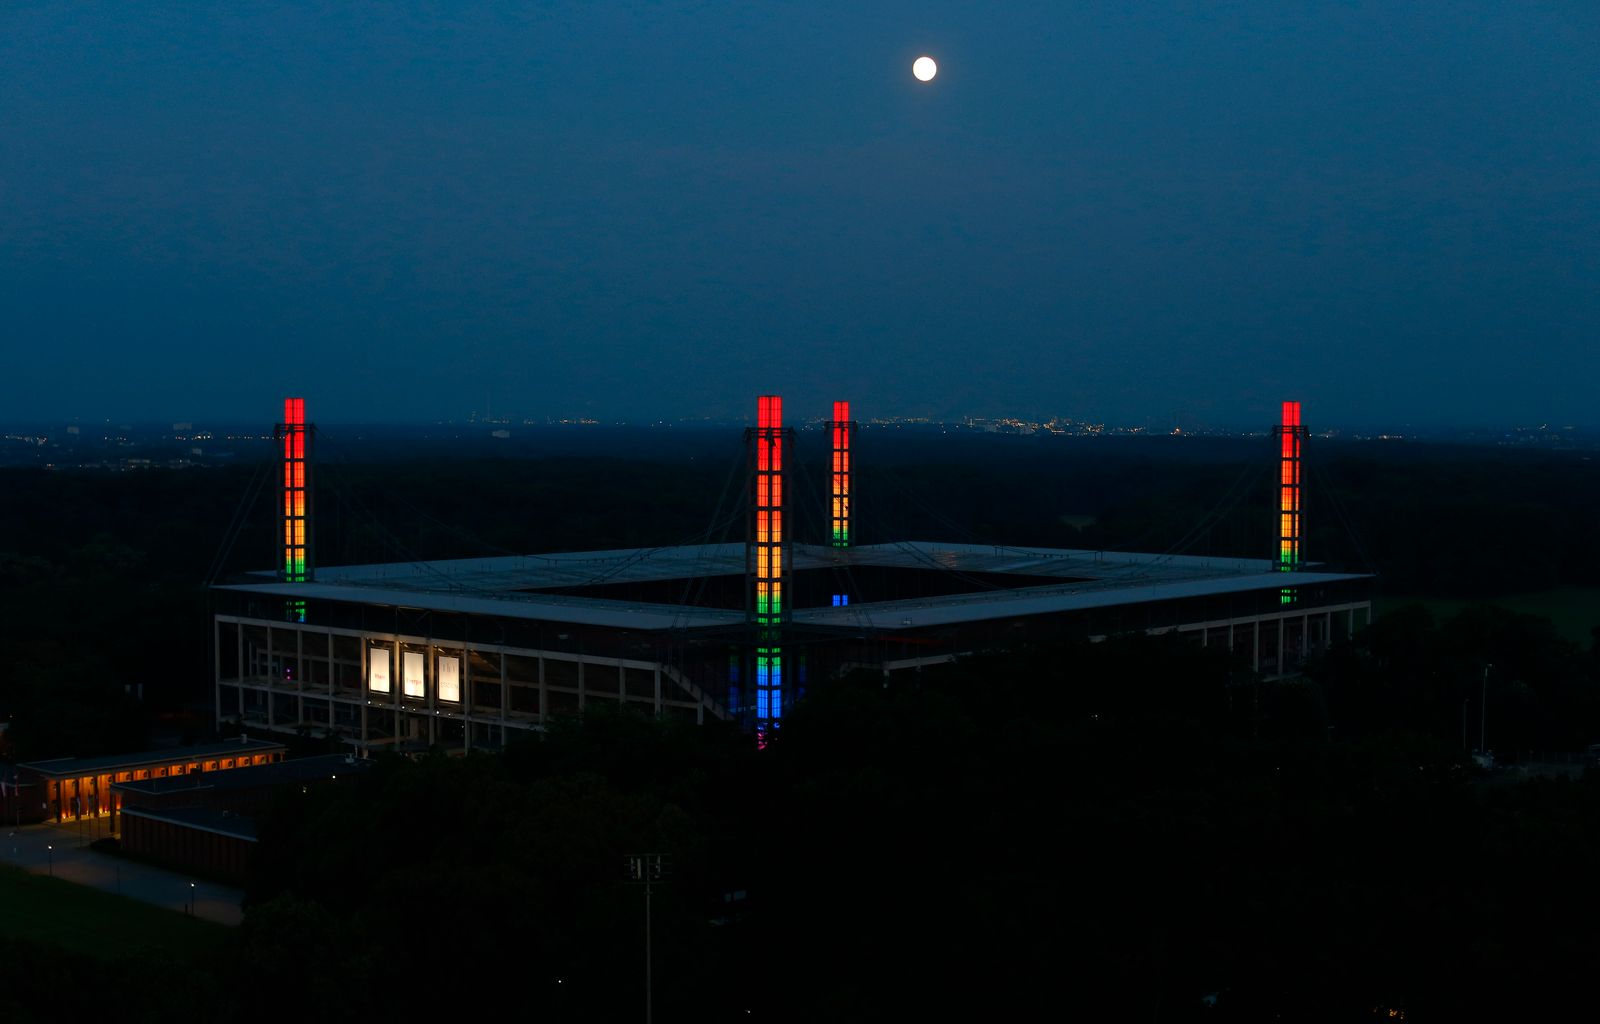 Euro 2020 - Stadiums in Germany expected to be illuminated in rainbow colours during the Germany v Hungary match